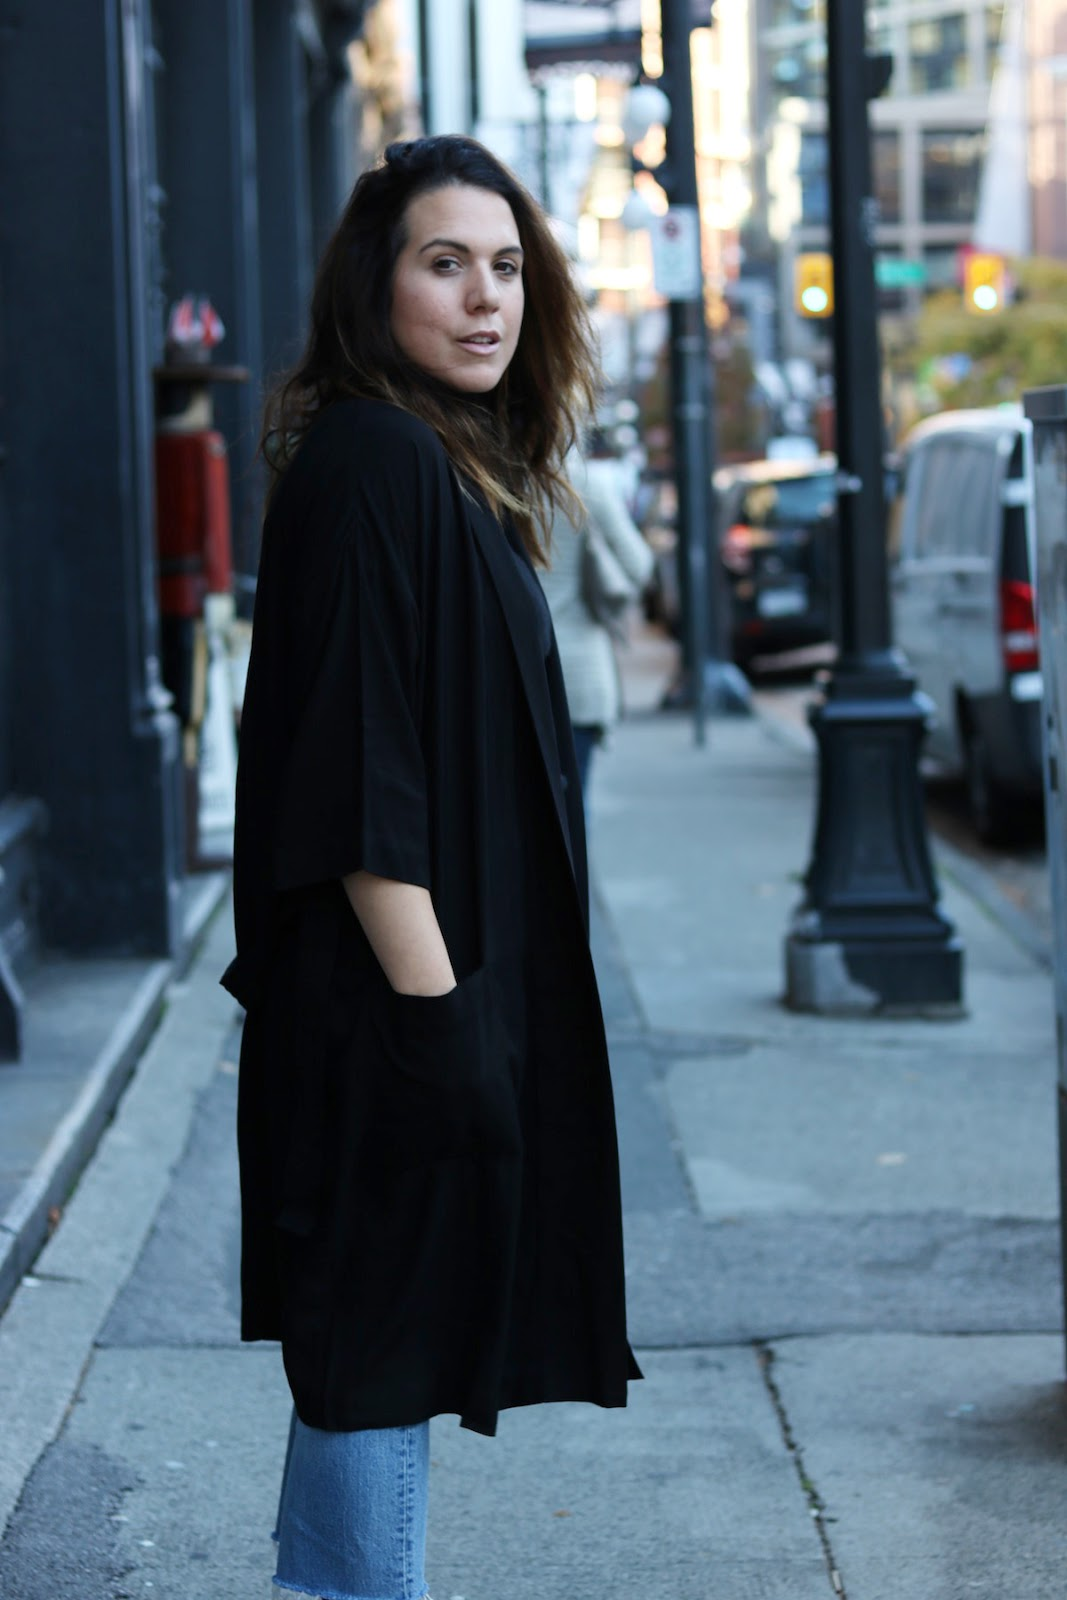 Frank and Oak Women robe coat kimono outfit vancouver fashion blogger red boots levis wedgie jeans